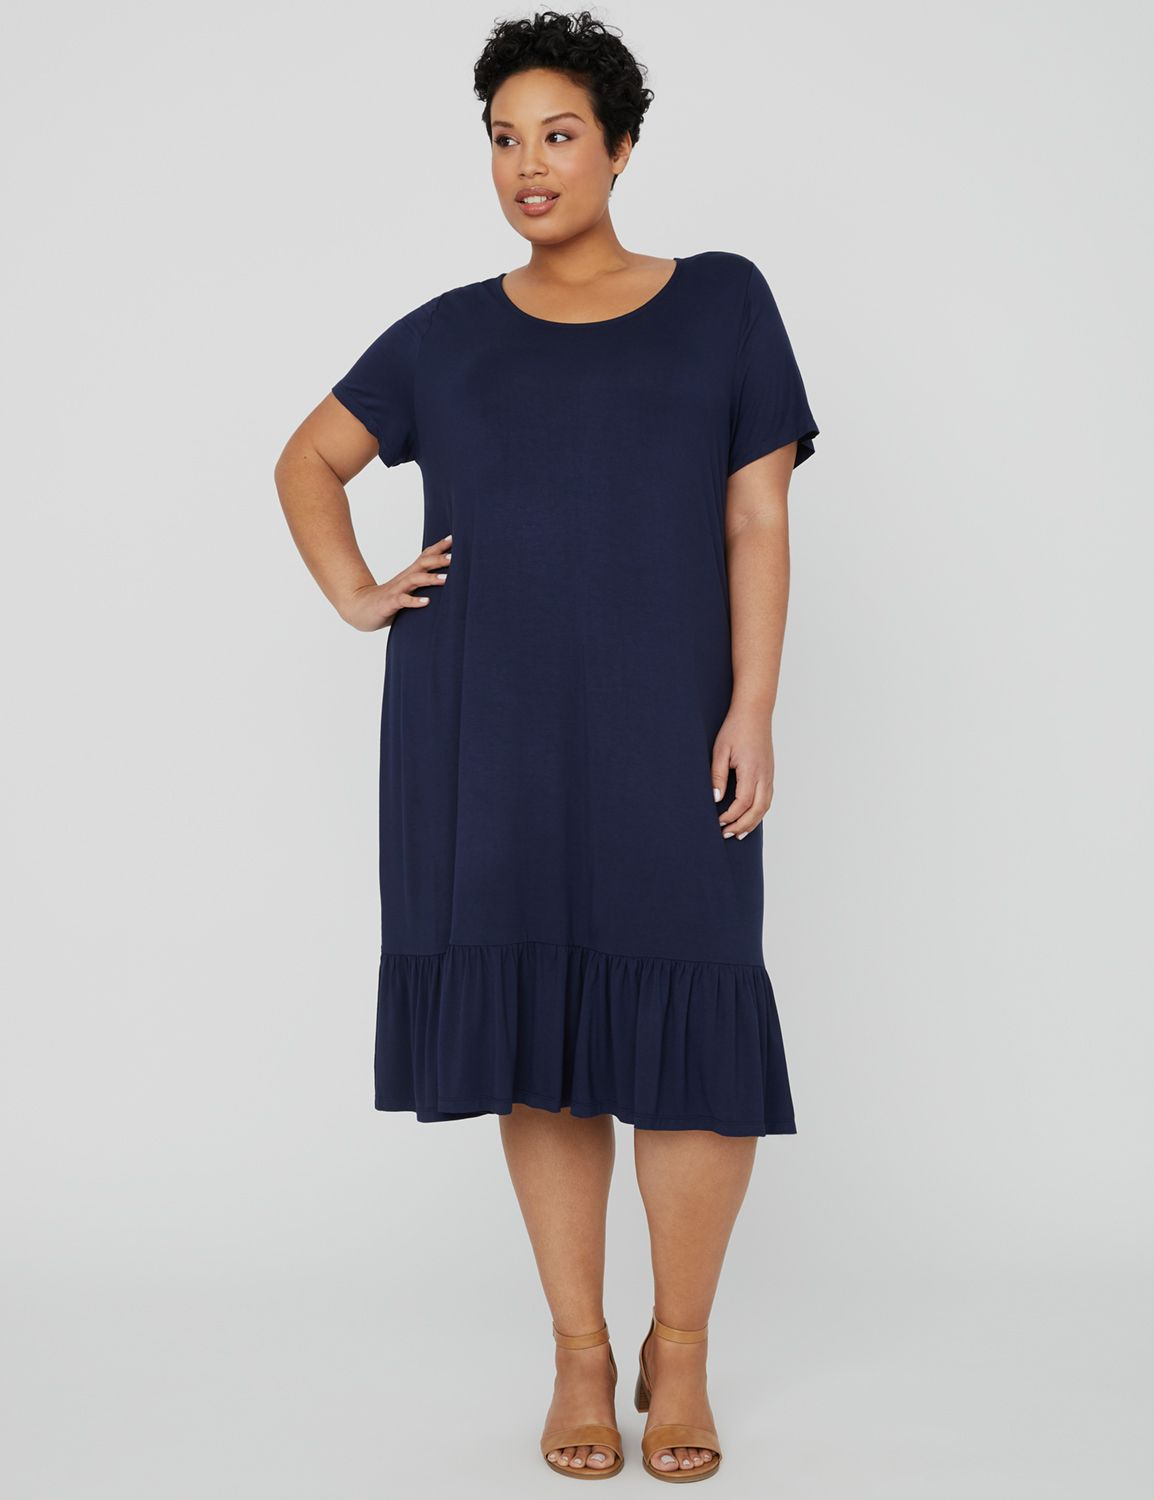 Exhale T-Shirt A-Line Dress 1090955 T-shirt Dress with Flounce MP-300102410